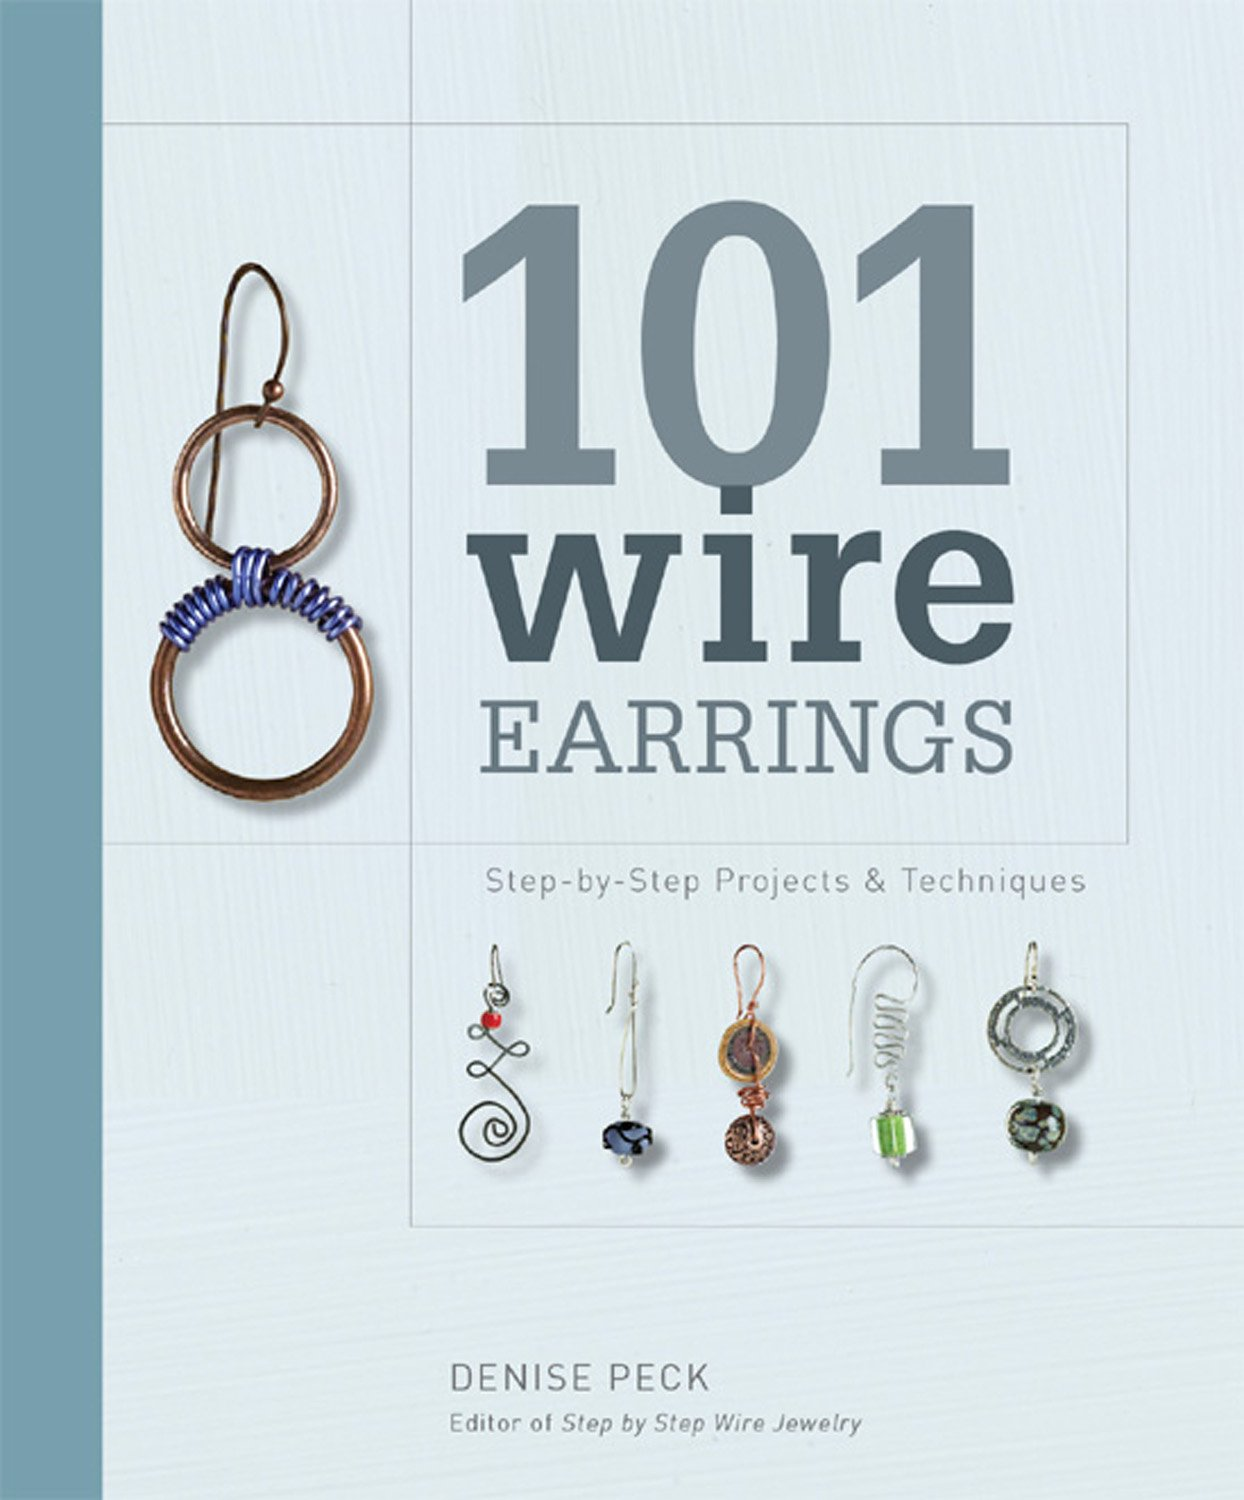 101 Wire Earrings: Step-by-Step Projects & Techniques: Denise Peck ...